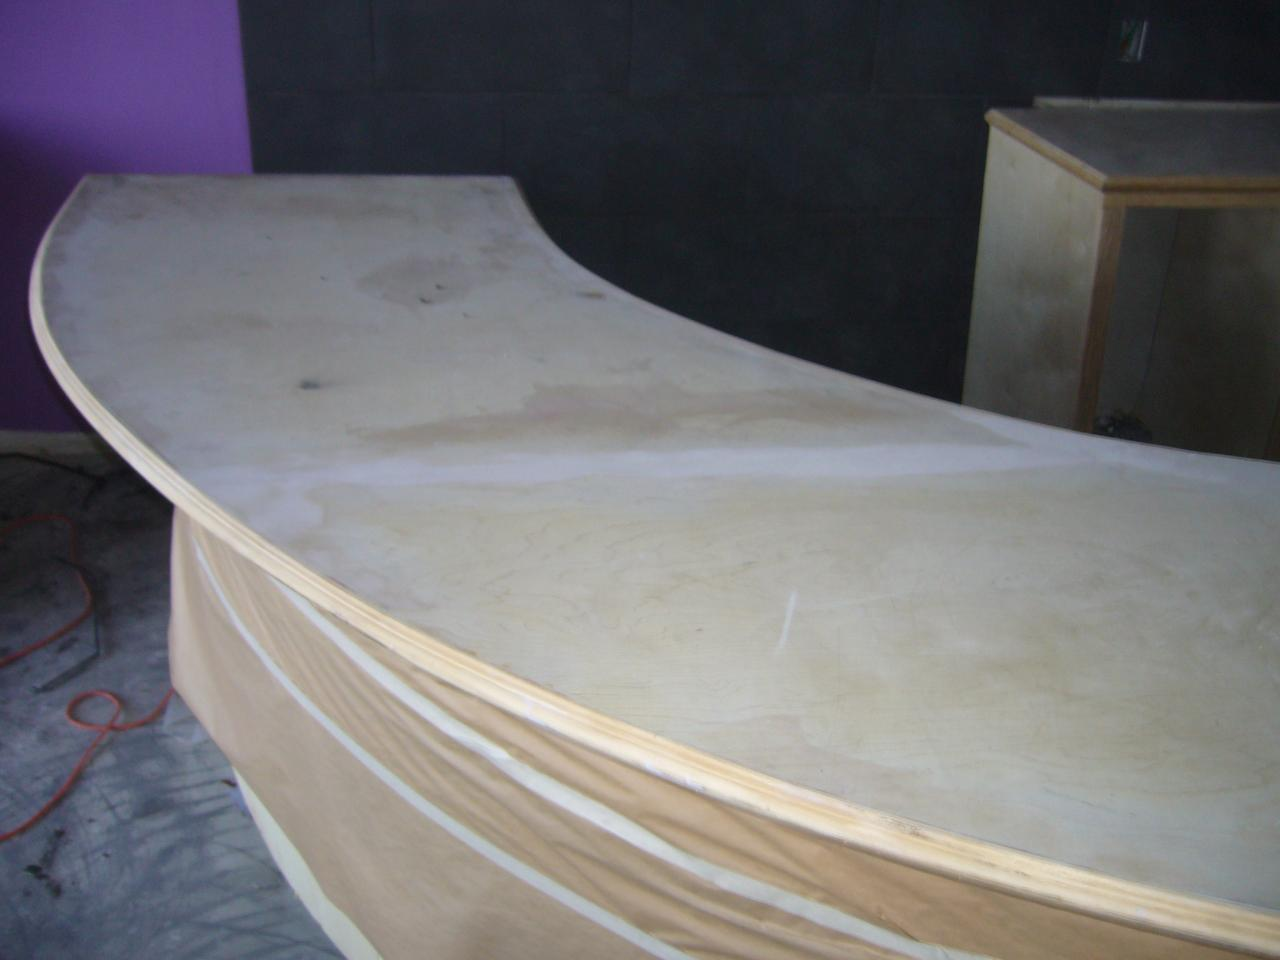 Countertop Shop : ... Frozen Yogurt shop custom cabinets and countertops with custom colors